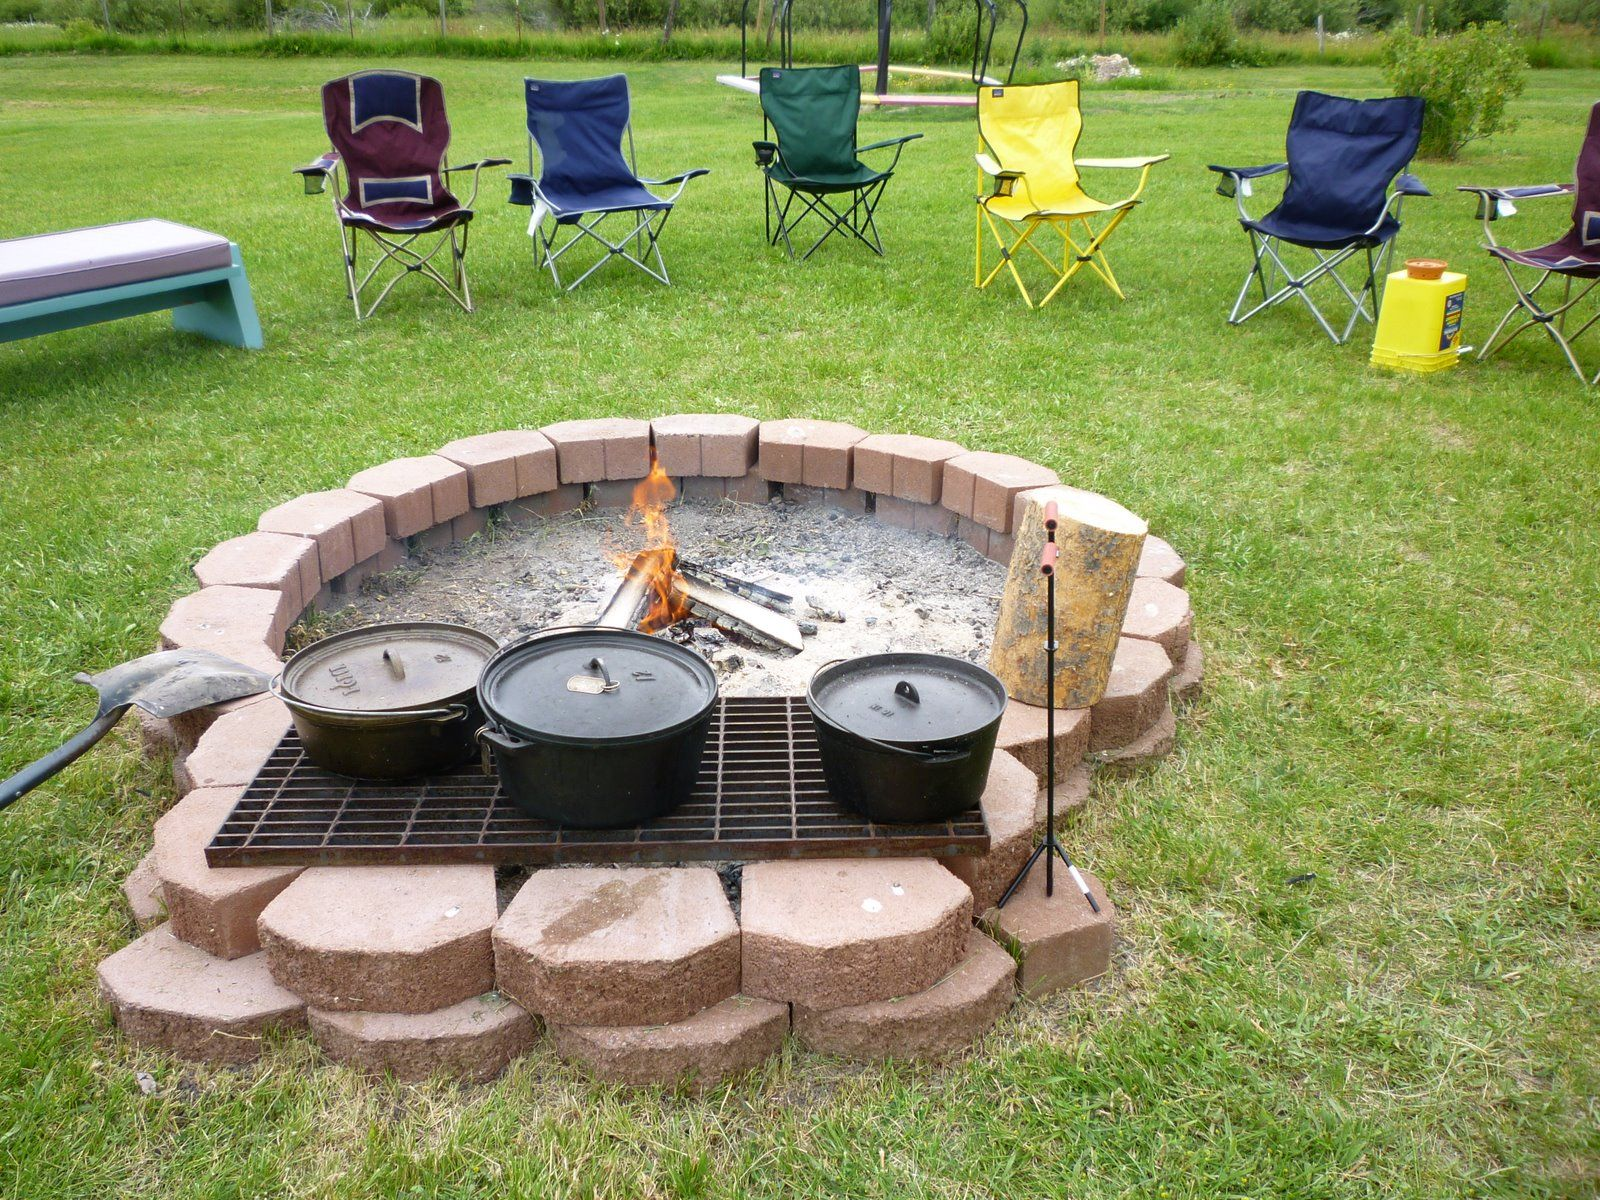 Pjpg fire pit pinterest dutch oven cooking oven